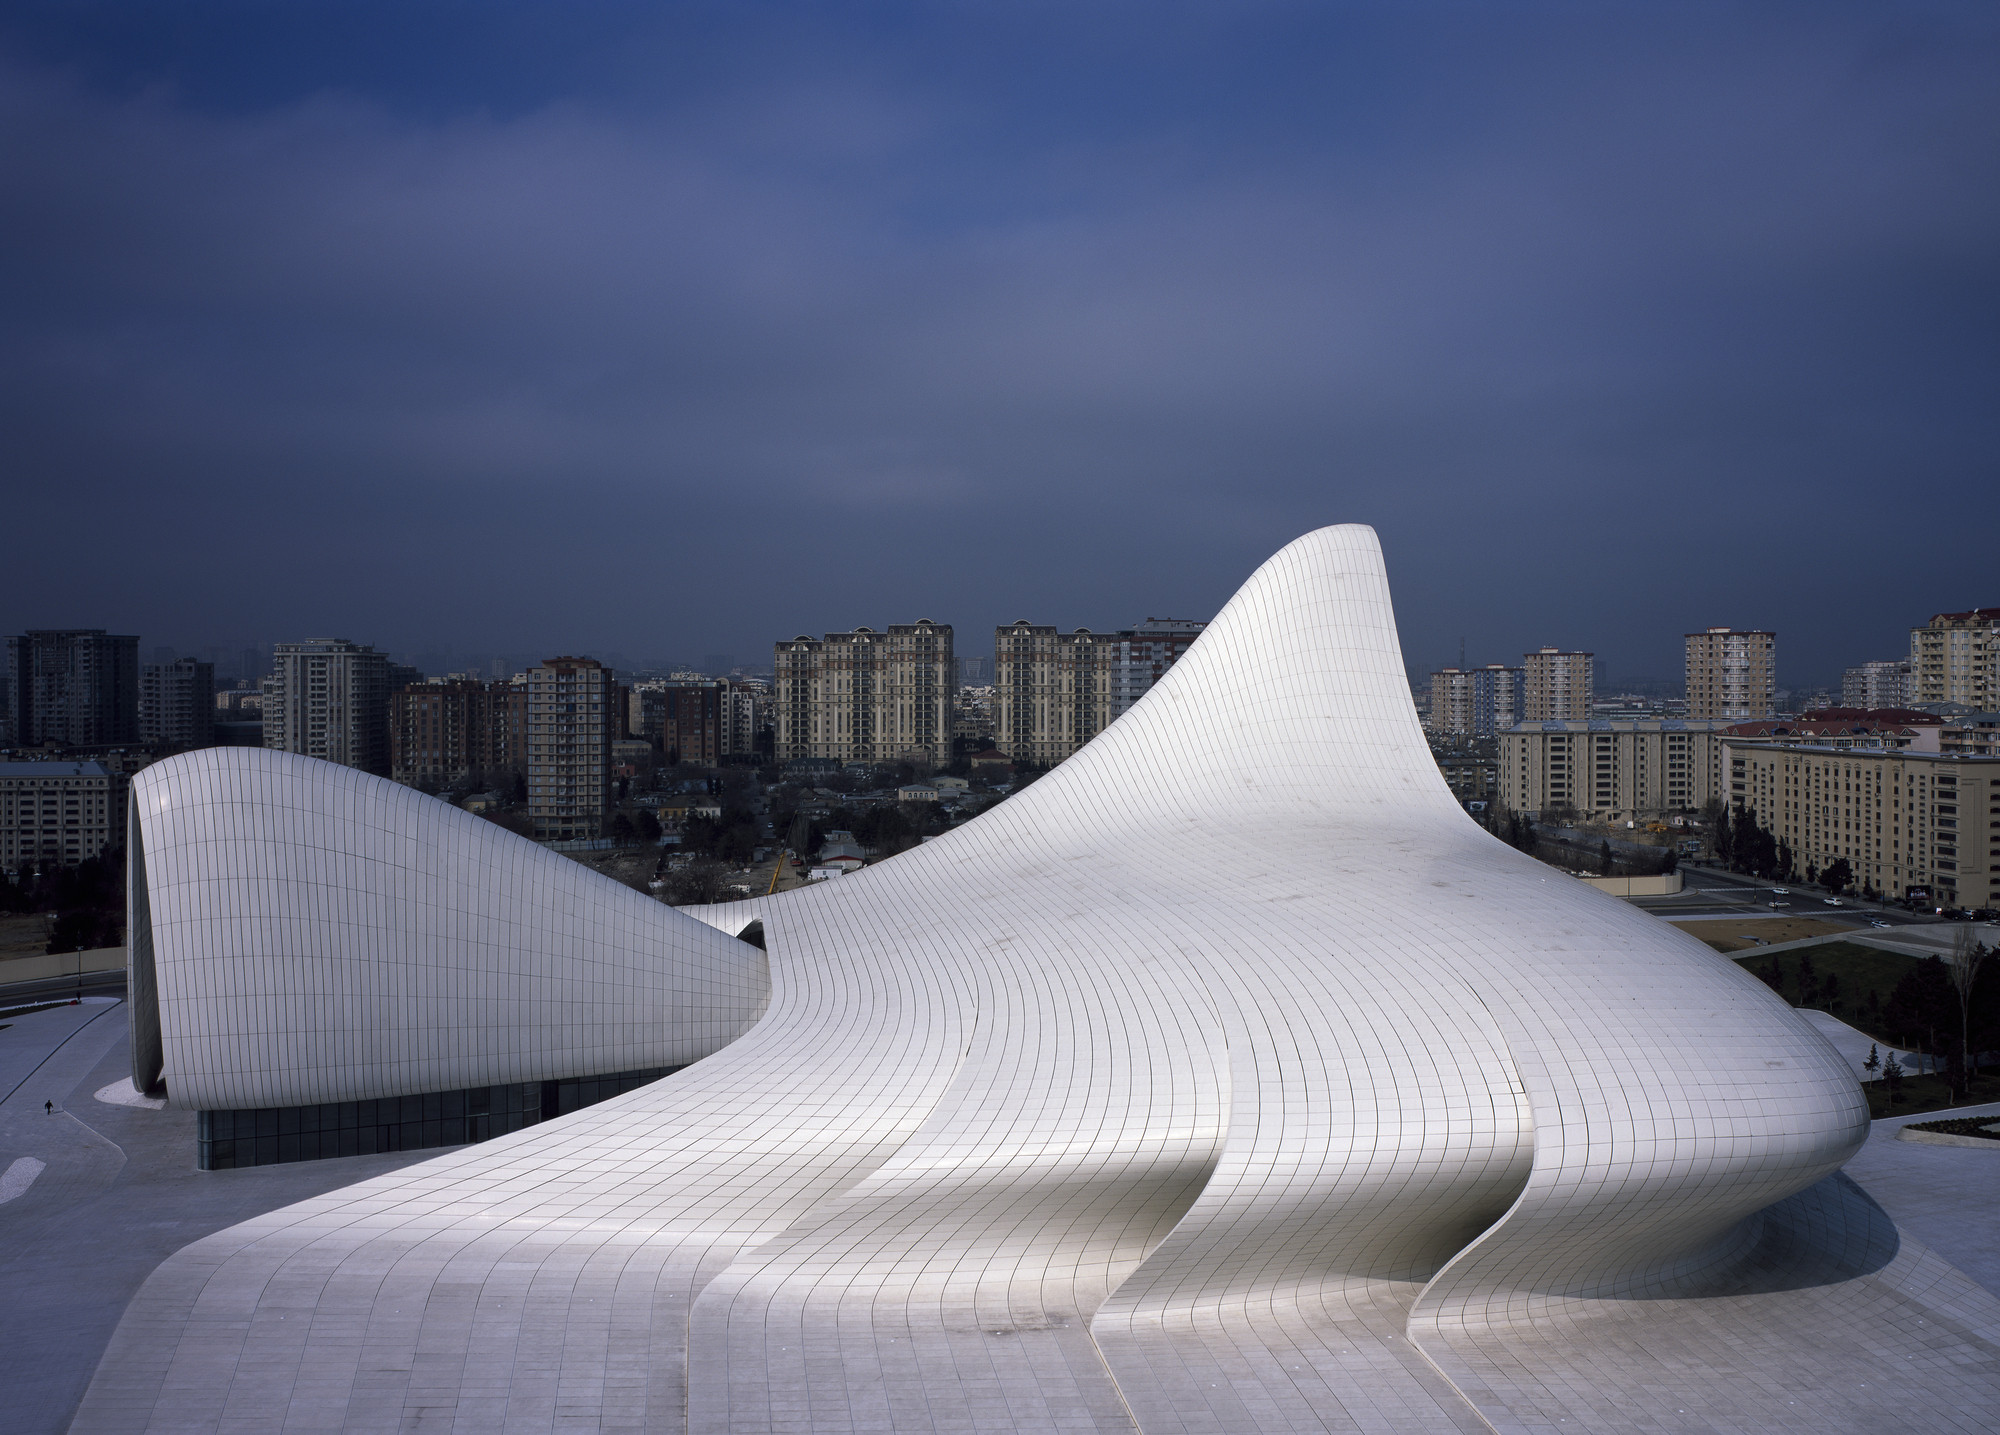 Zaha Hadid Design Concepts And Theory unified architectural theory | tag | archdaily